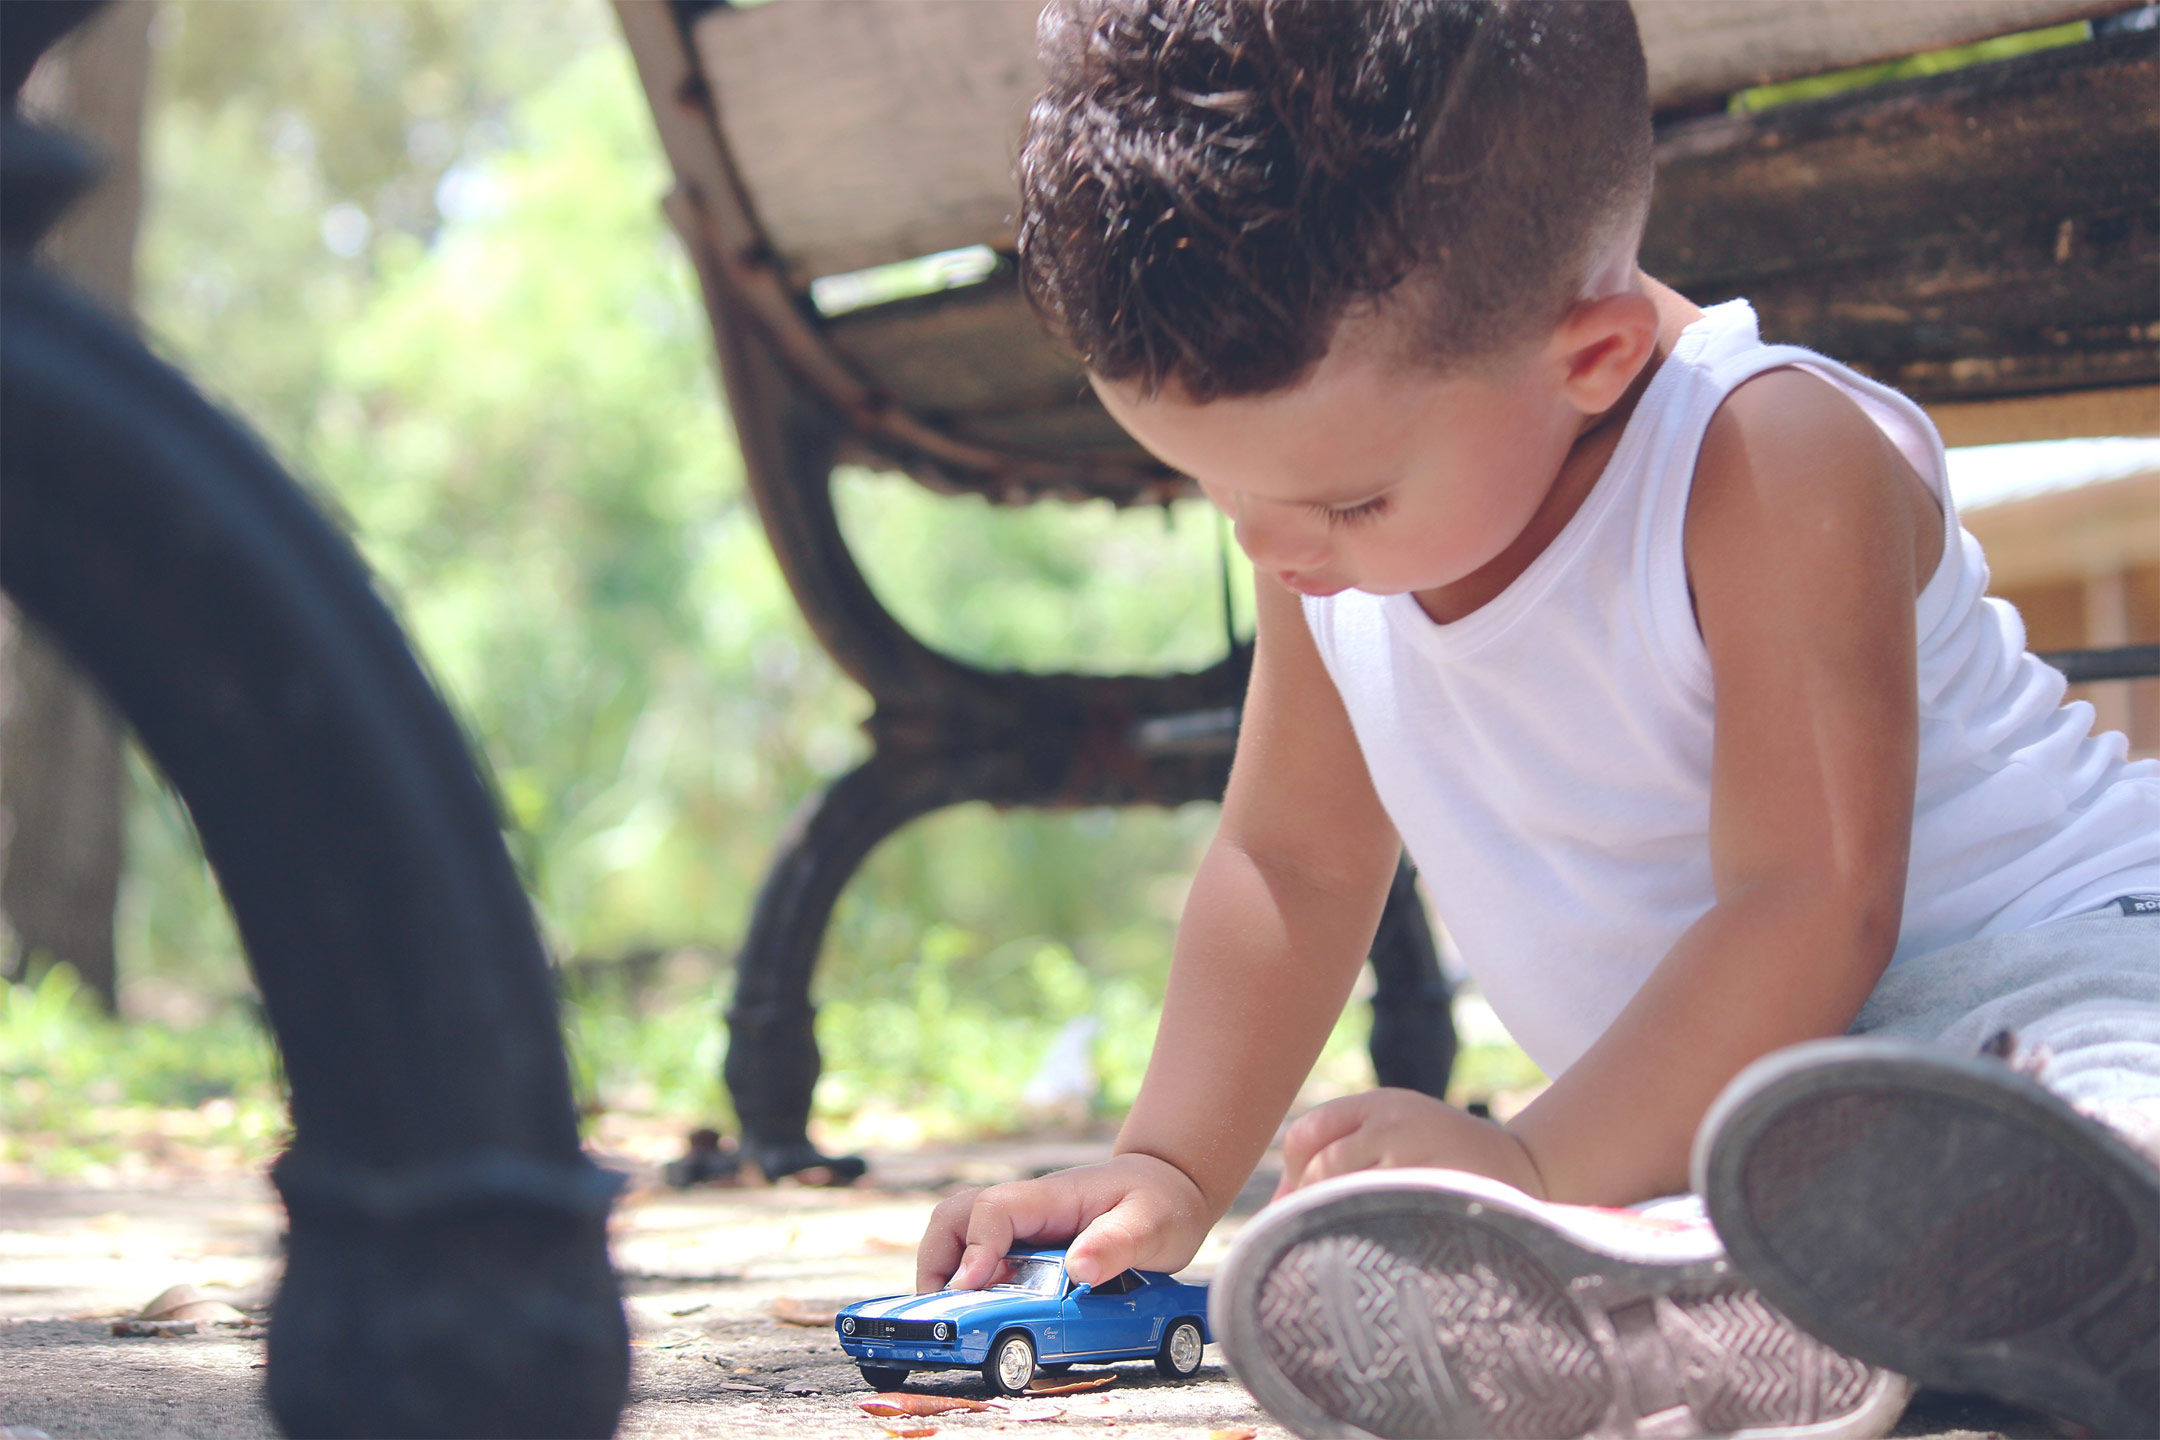 toddler-playing-with-toy-car2160